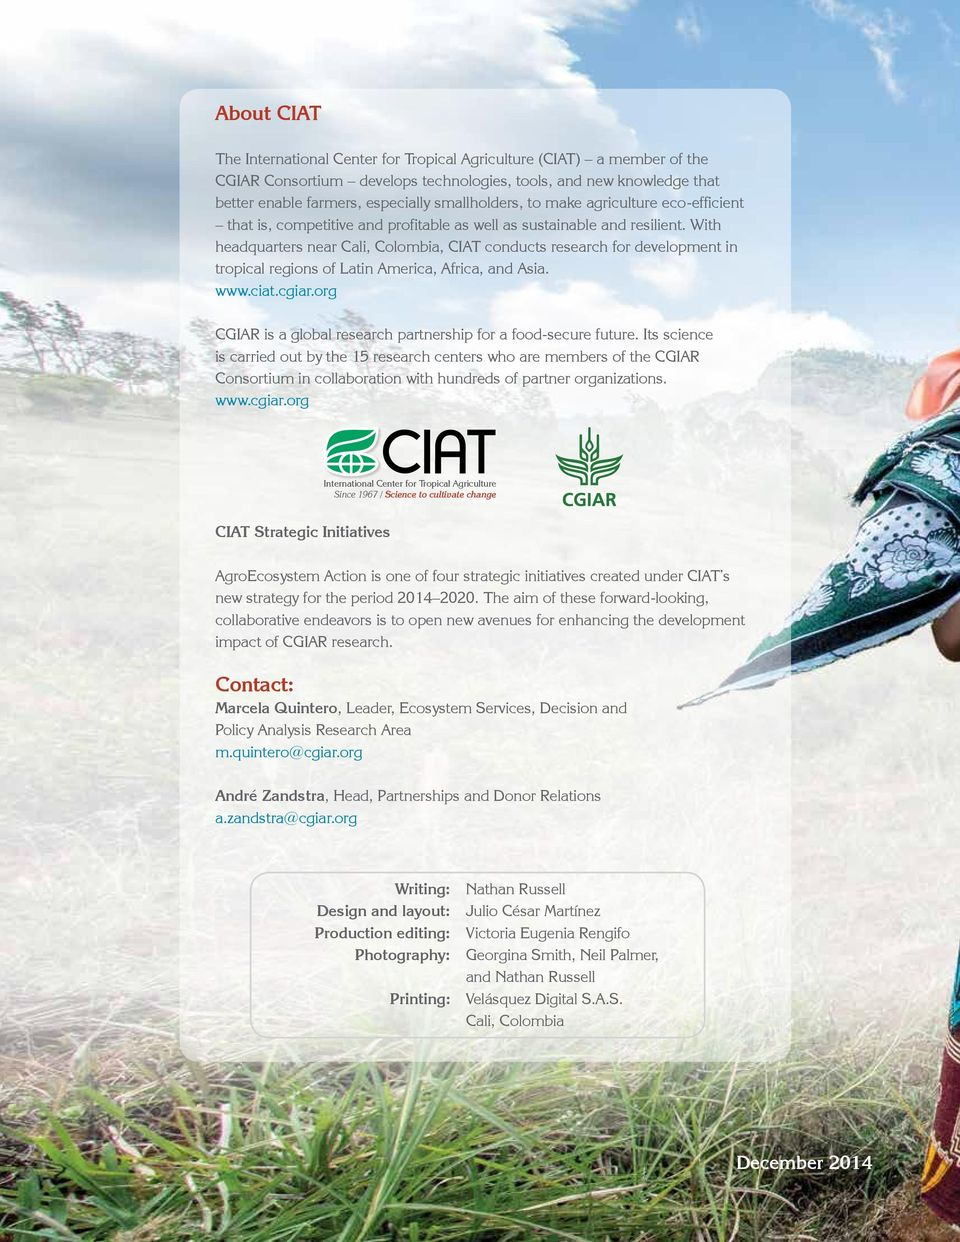 With headquarters near Cali, Colombia, CIAT conducts research for development in tropical regions of Latin America, Africa, and Asia. www.ciat.cgiar.